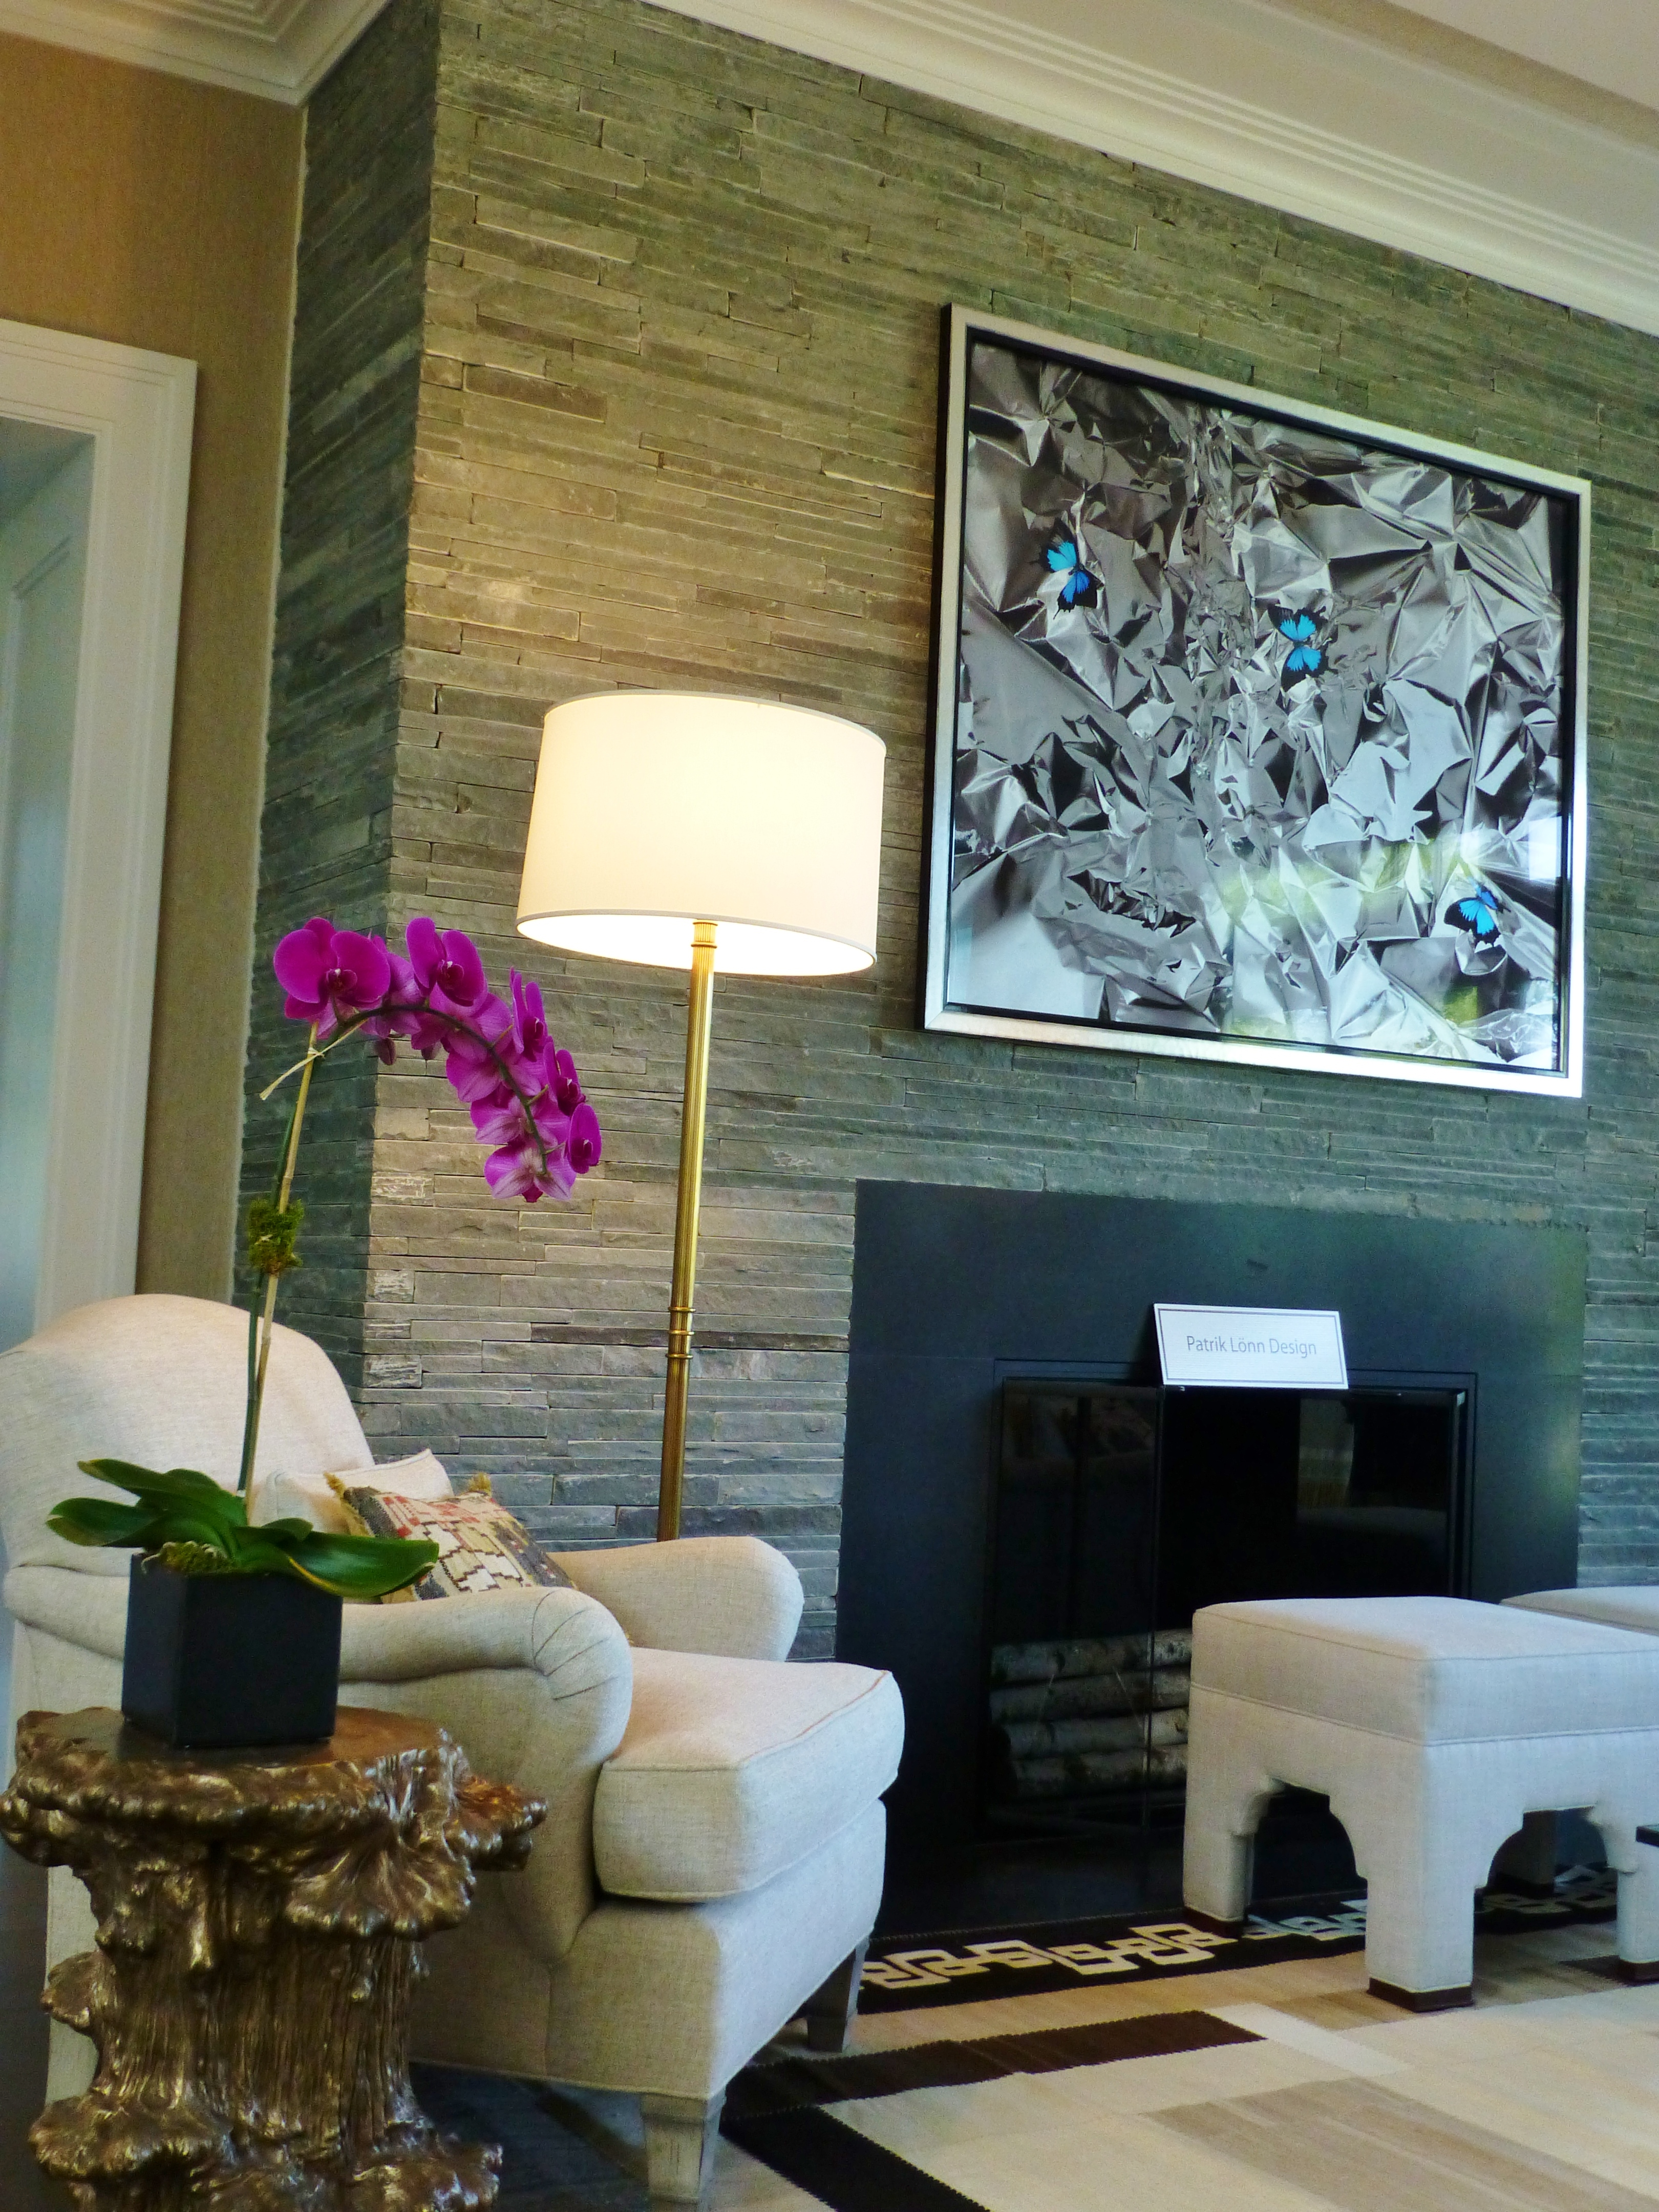 Welcome back to my little tour of the 2014 Hampton Designer Showhouse. In my last post we visited the pool house